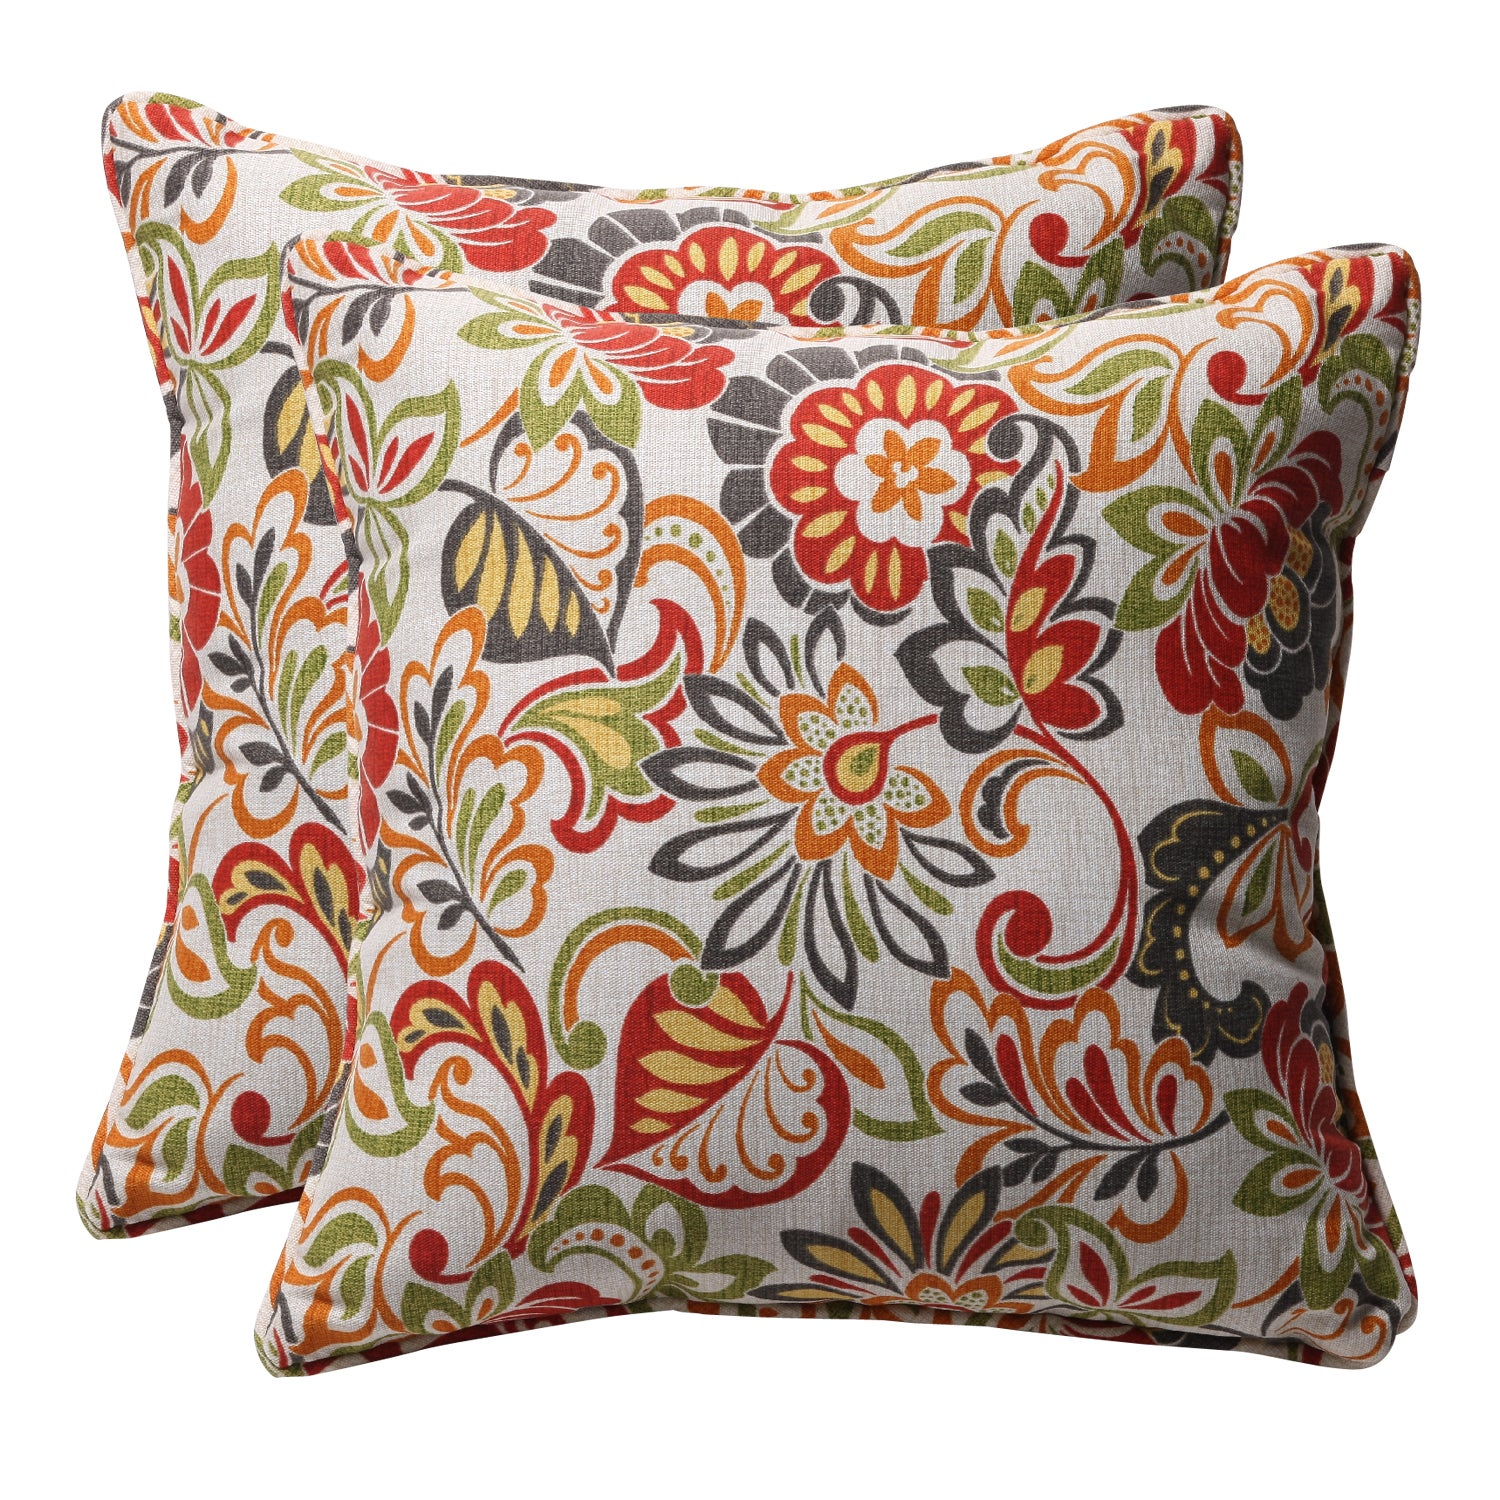 Multicolored Floral Square Outdoor Toss Pillows Set of 2 Patio Furniture Pool